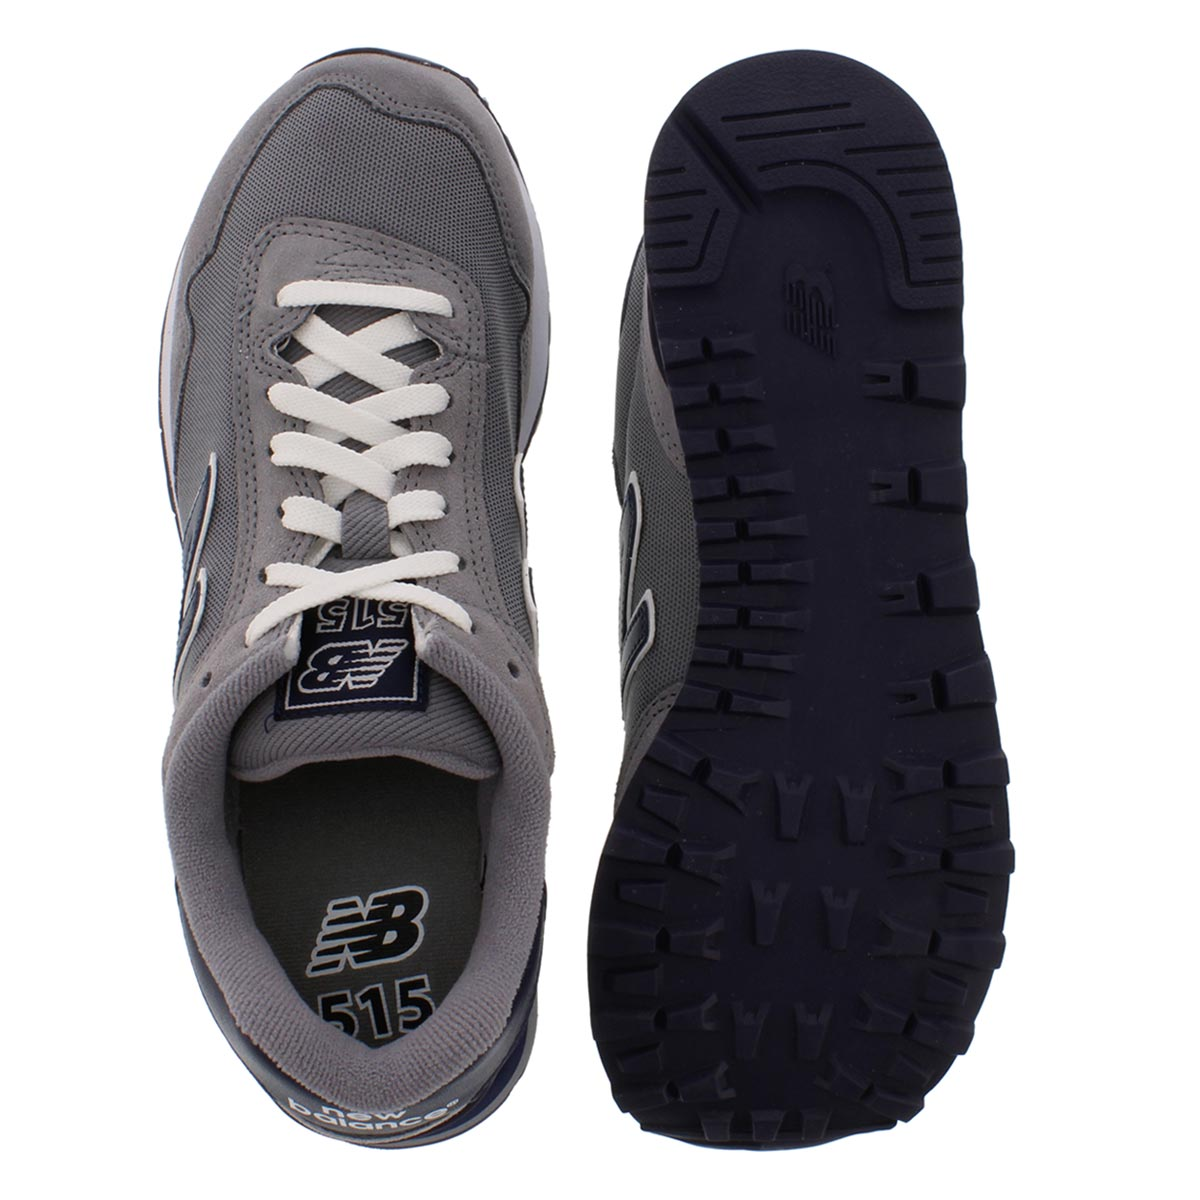 Mns 515 grey lace up sneaker